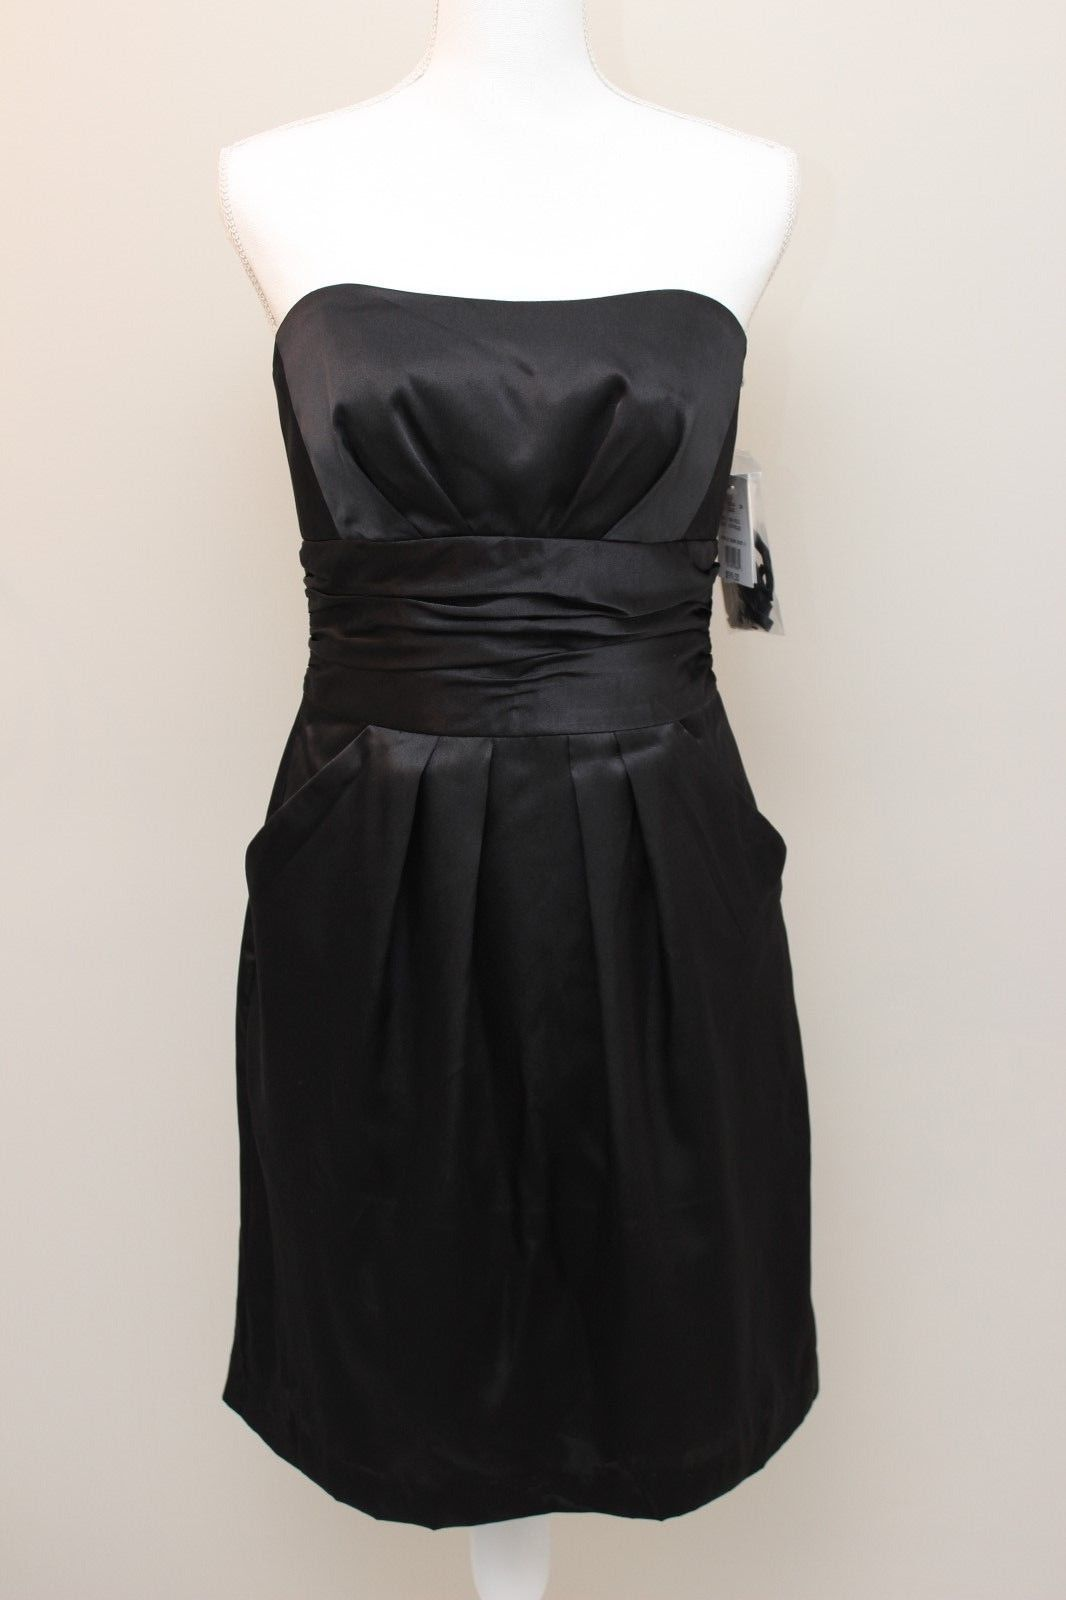 Primary image for DAVIDS BRIDAL WOMENS 83707 BLACK SATIN BRIDESMAIDS COCKTAIL DRESS ~NWT~SZ 8